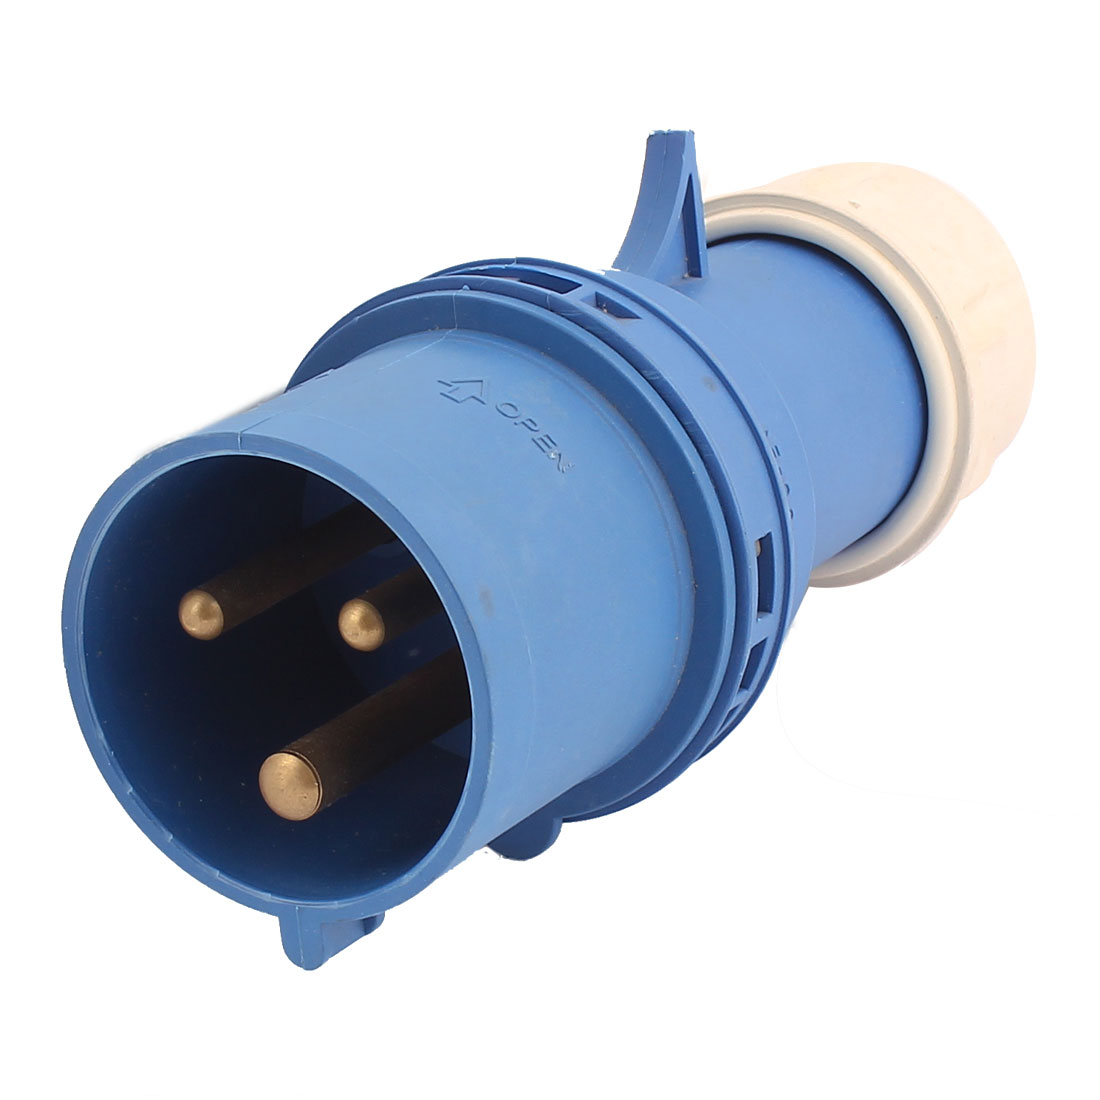 AC 200V-250V 32A IP55 2P+E 3-Terminal Male Industrial Electrical Plug